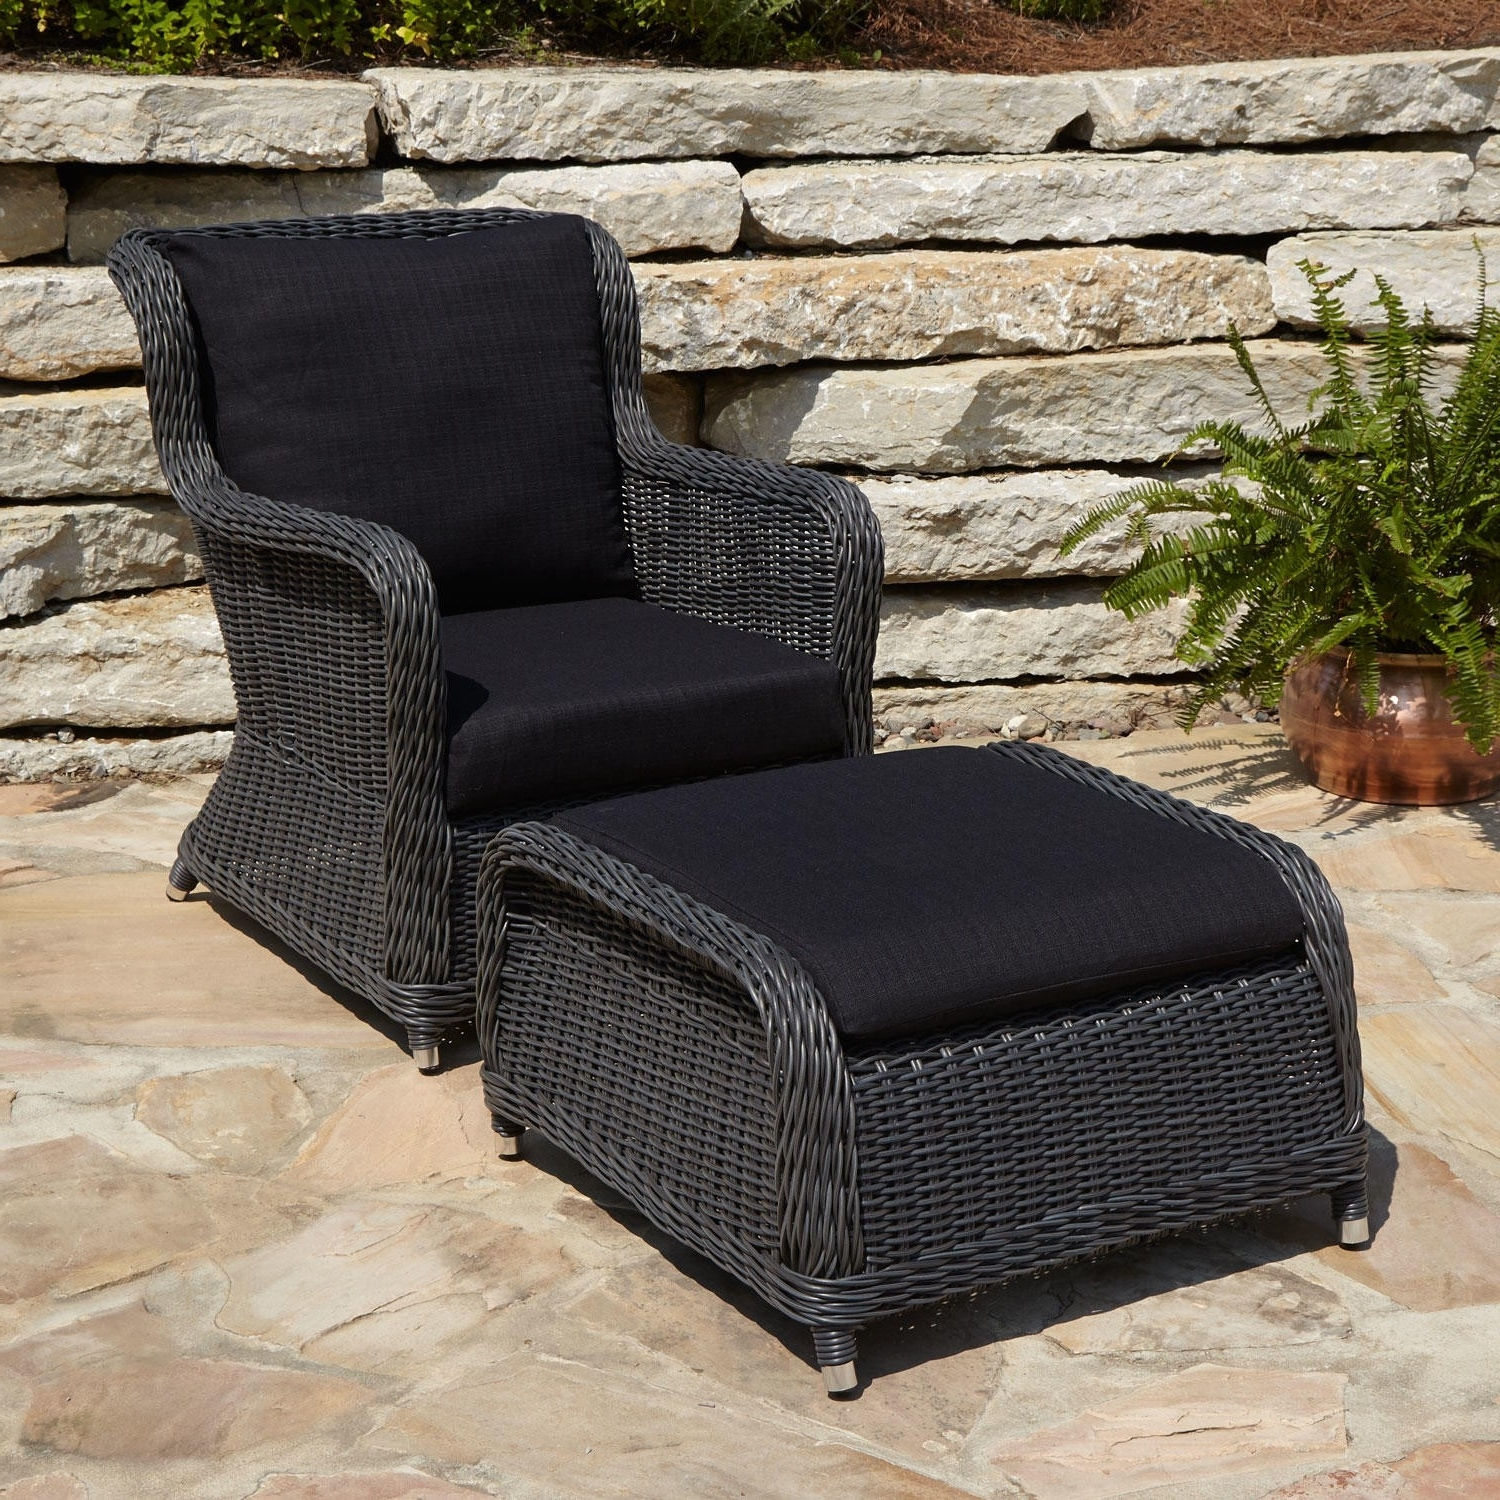 Most Popular Outdoor : Outdoor Lounger Sofa Lowes Lounge Chairs Big Lots Lounge Inside Chaise Lounge Chairs At Big Lots (View 11 of 15)